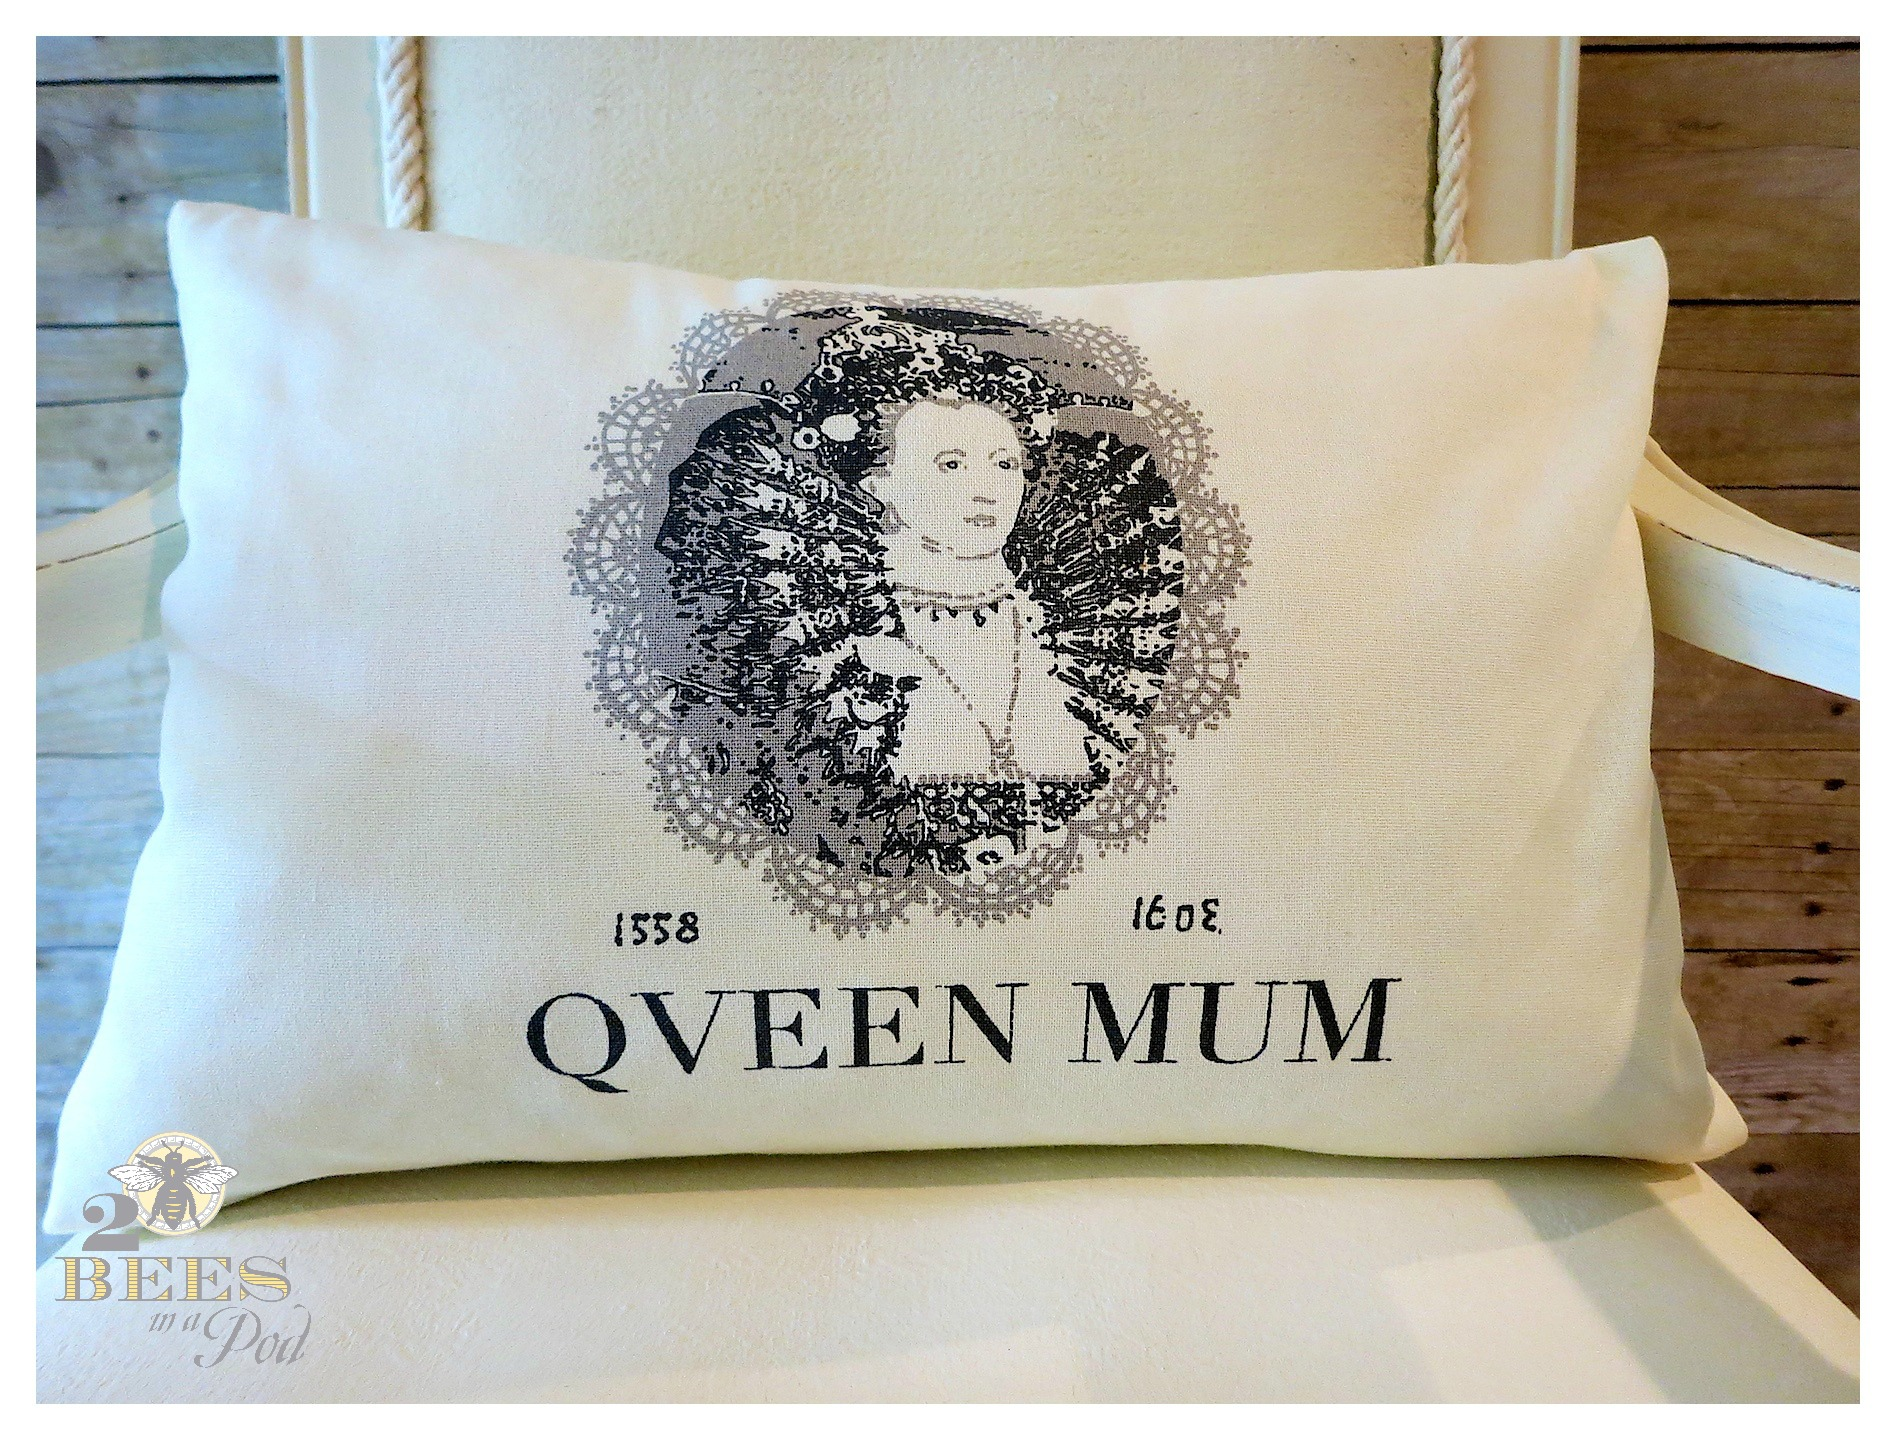 DIY Dish Towel Pillow - Create a new decorative pillow from a new dish towel. Super easy - close up the two sides, add pillow form and close up the bottom seam. You can sew, glue or iron-on adhesive strips!